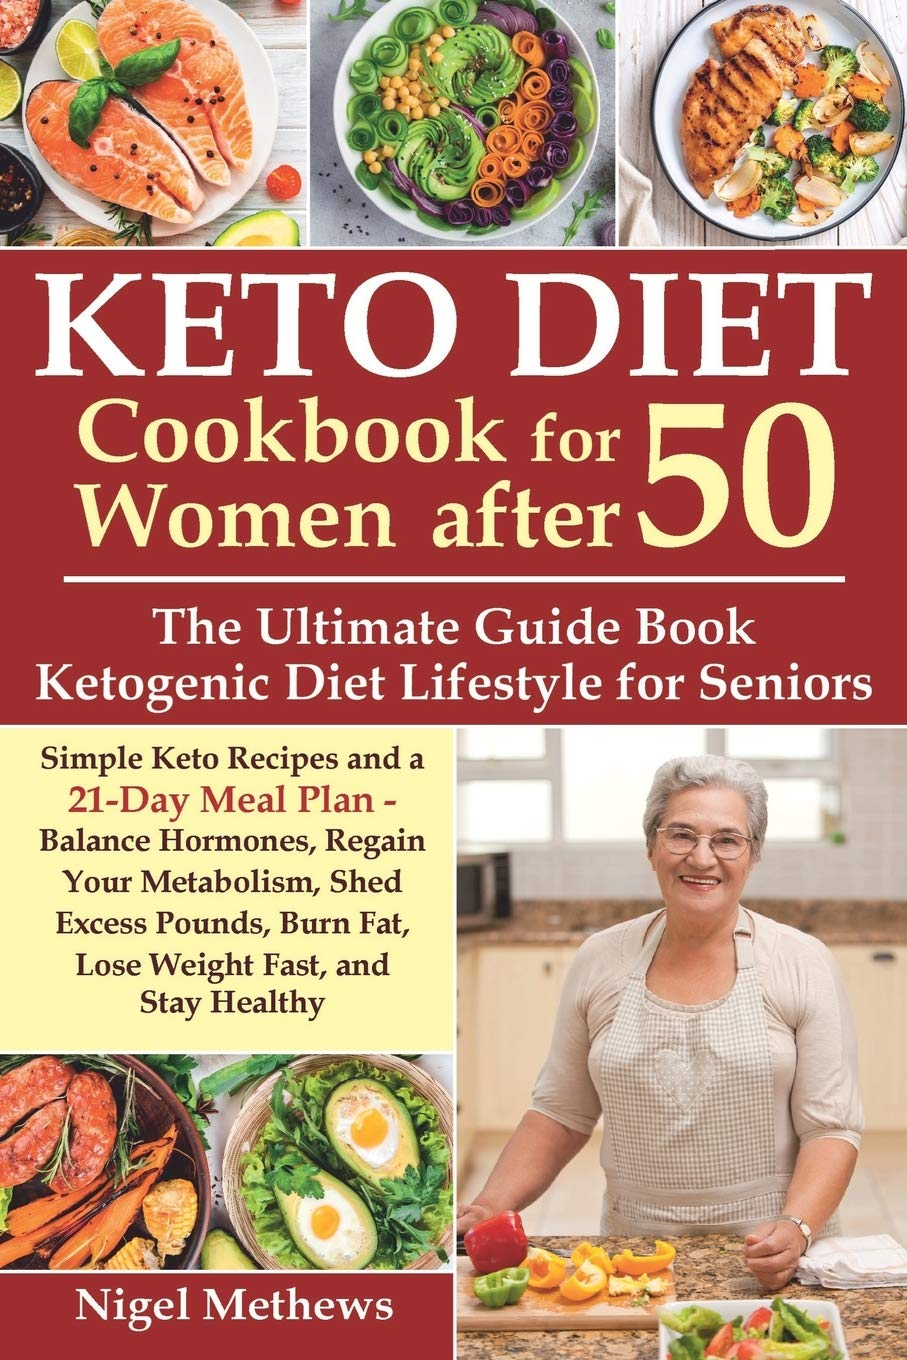 Keto Diet Cookbook for Women after 50: The Ultimate Guide Book Ketogenic Diet Lifestyle for Seniors.Simple Keto Recipes and 21-Day Meal Plan - Balance Hormones, Regain Your Metabolism and Stay Healthy 1